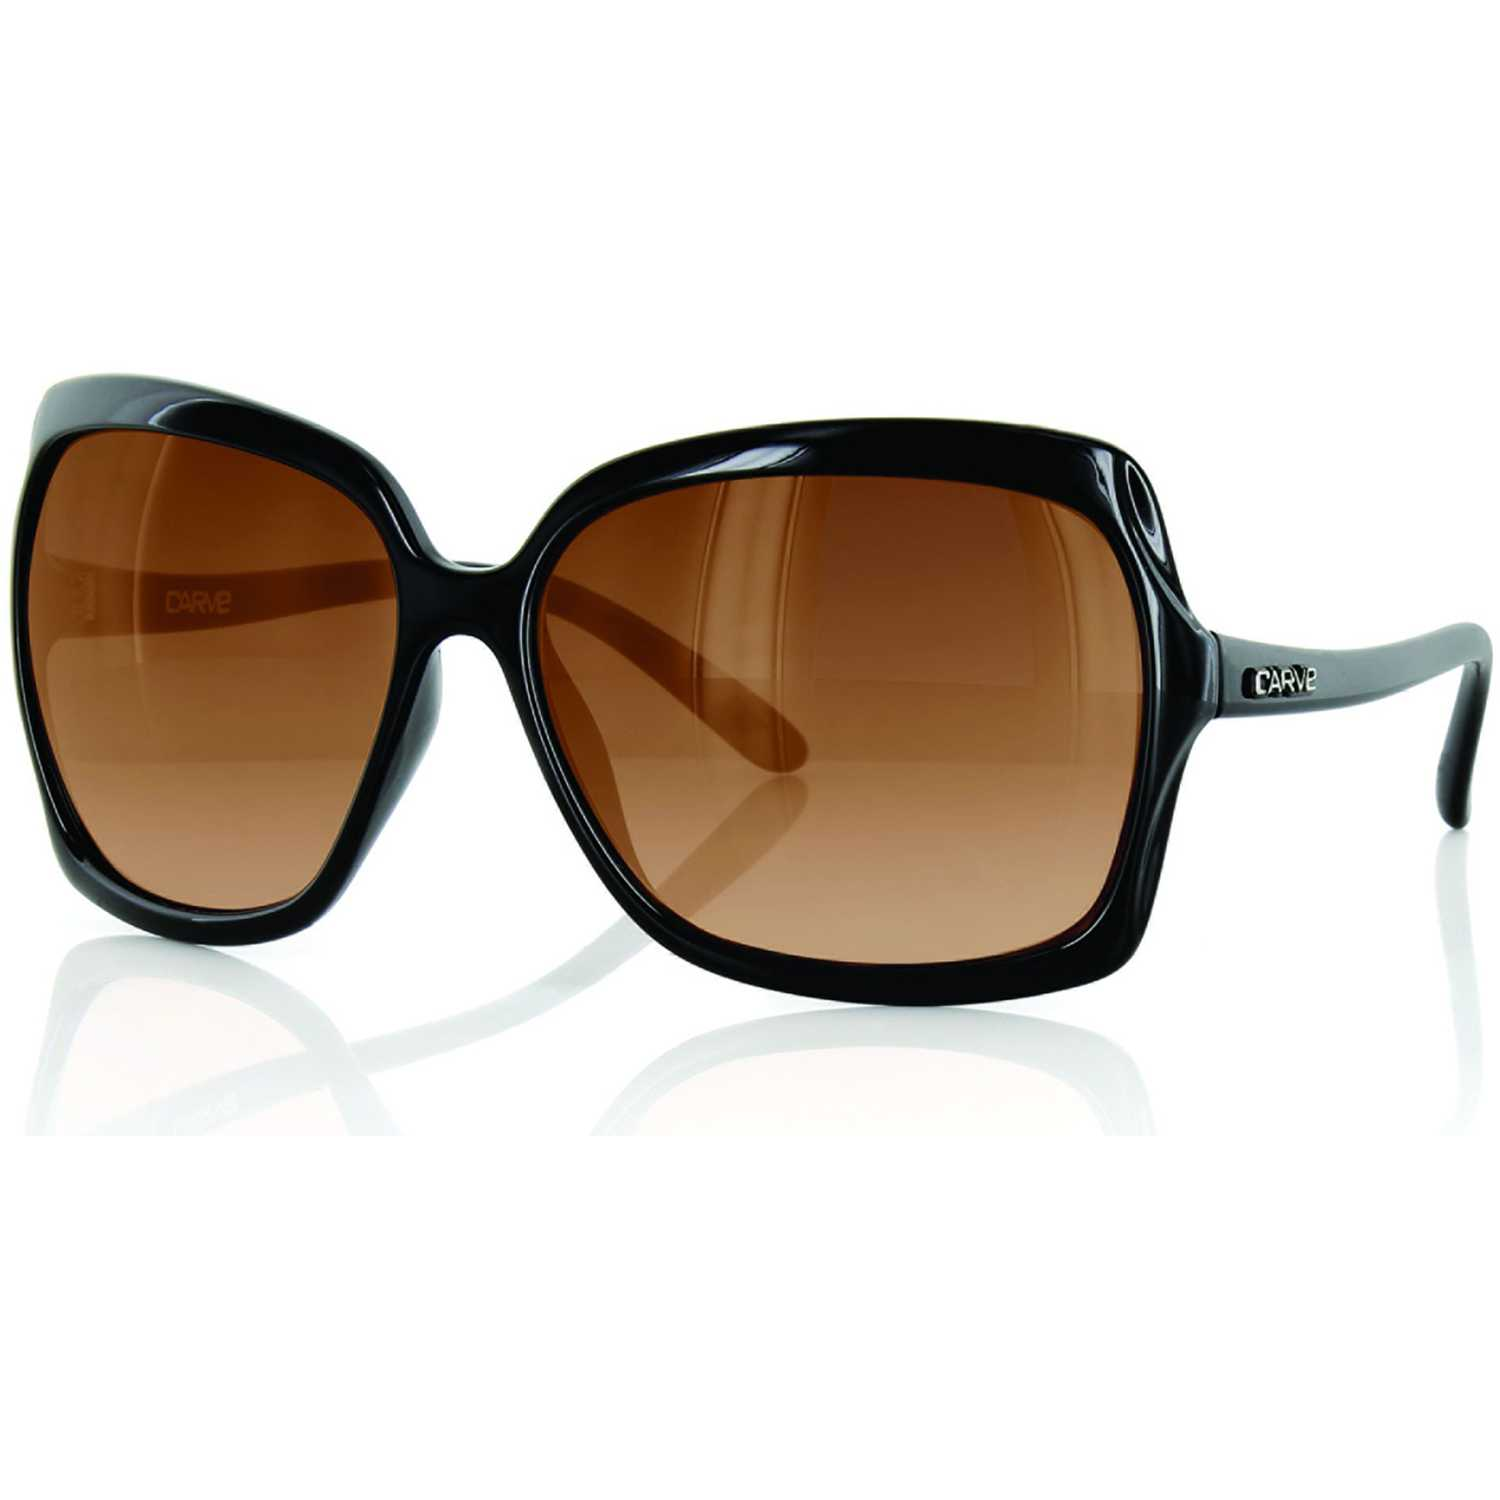 Carve grace Marron Lentes de Sol